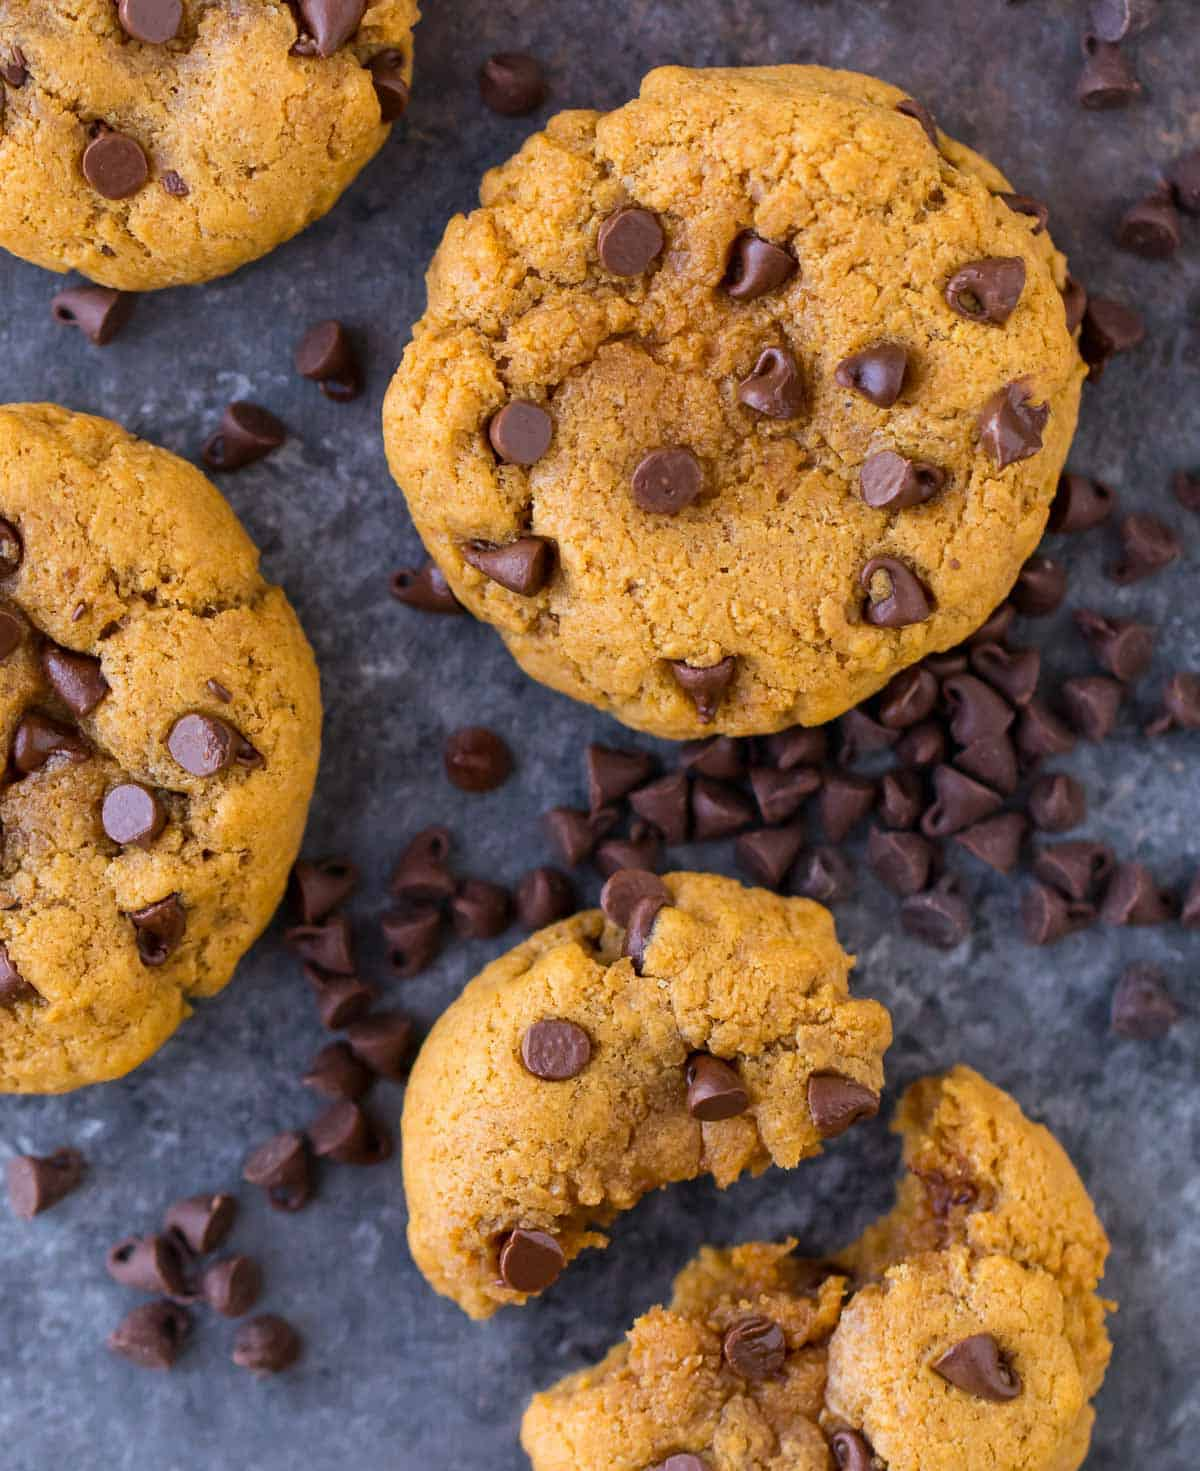 These peanut butter chocolate chip protein cookies are irresistible! Easy, gluten free, and packed with 7 grams protein each!